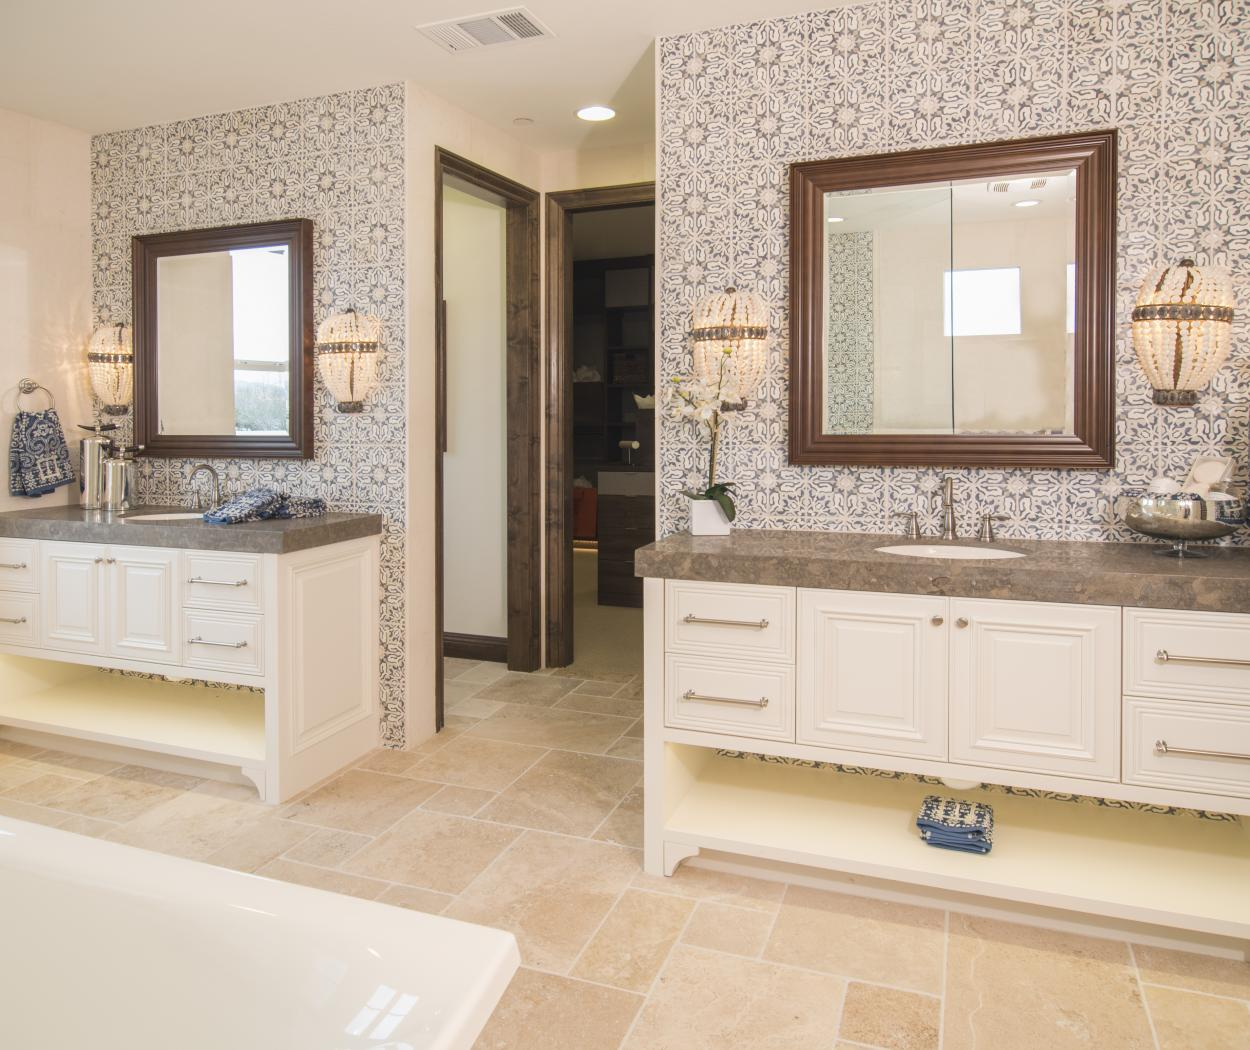 Beautiful White Double Vanity Master Bathroom with LED Under Cabinet Lighting and Granite Counter Tops